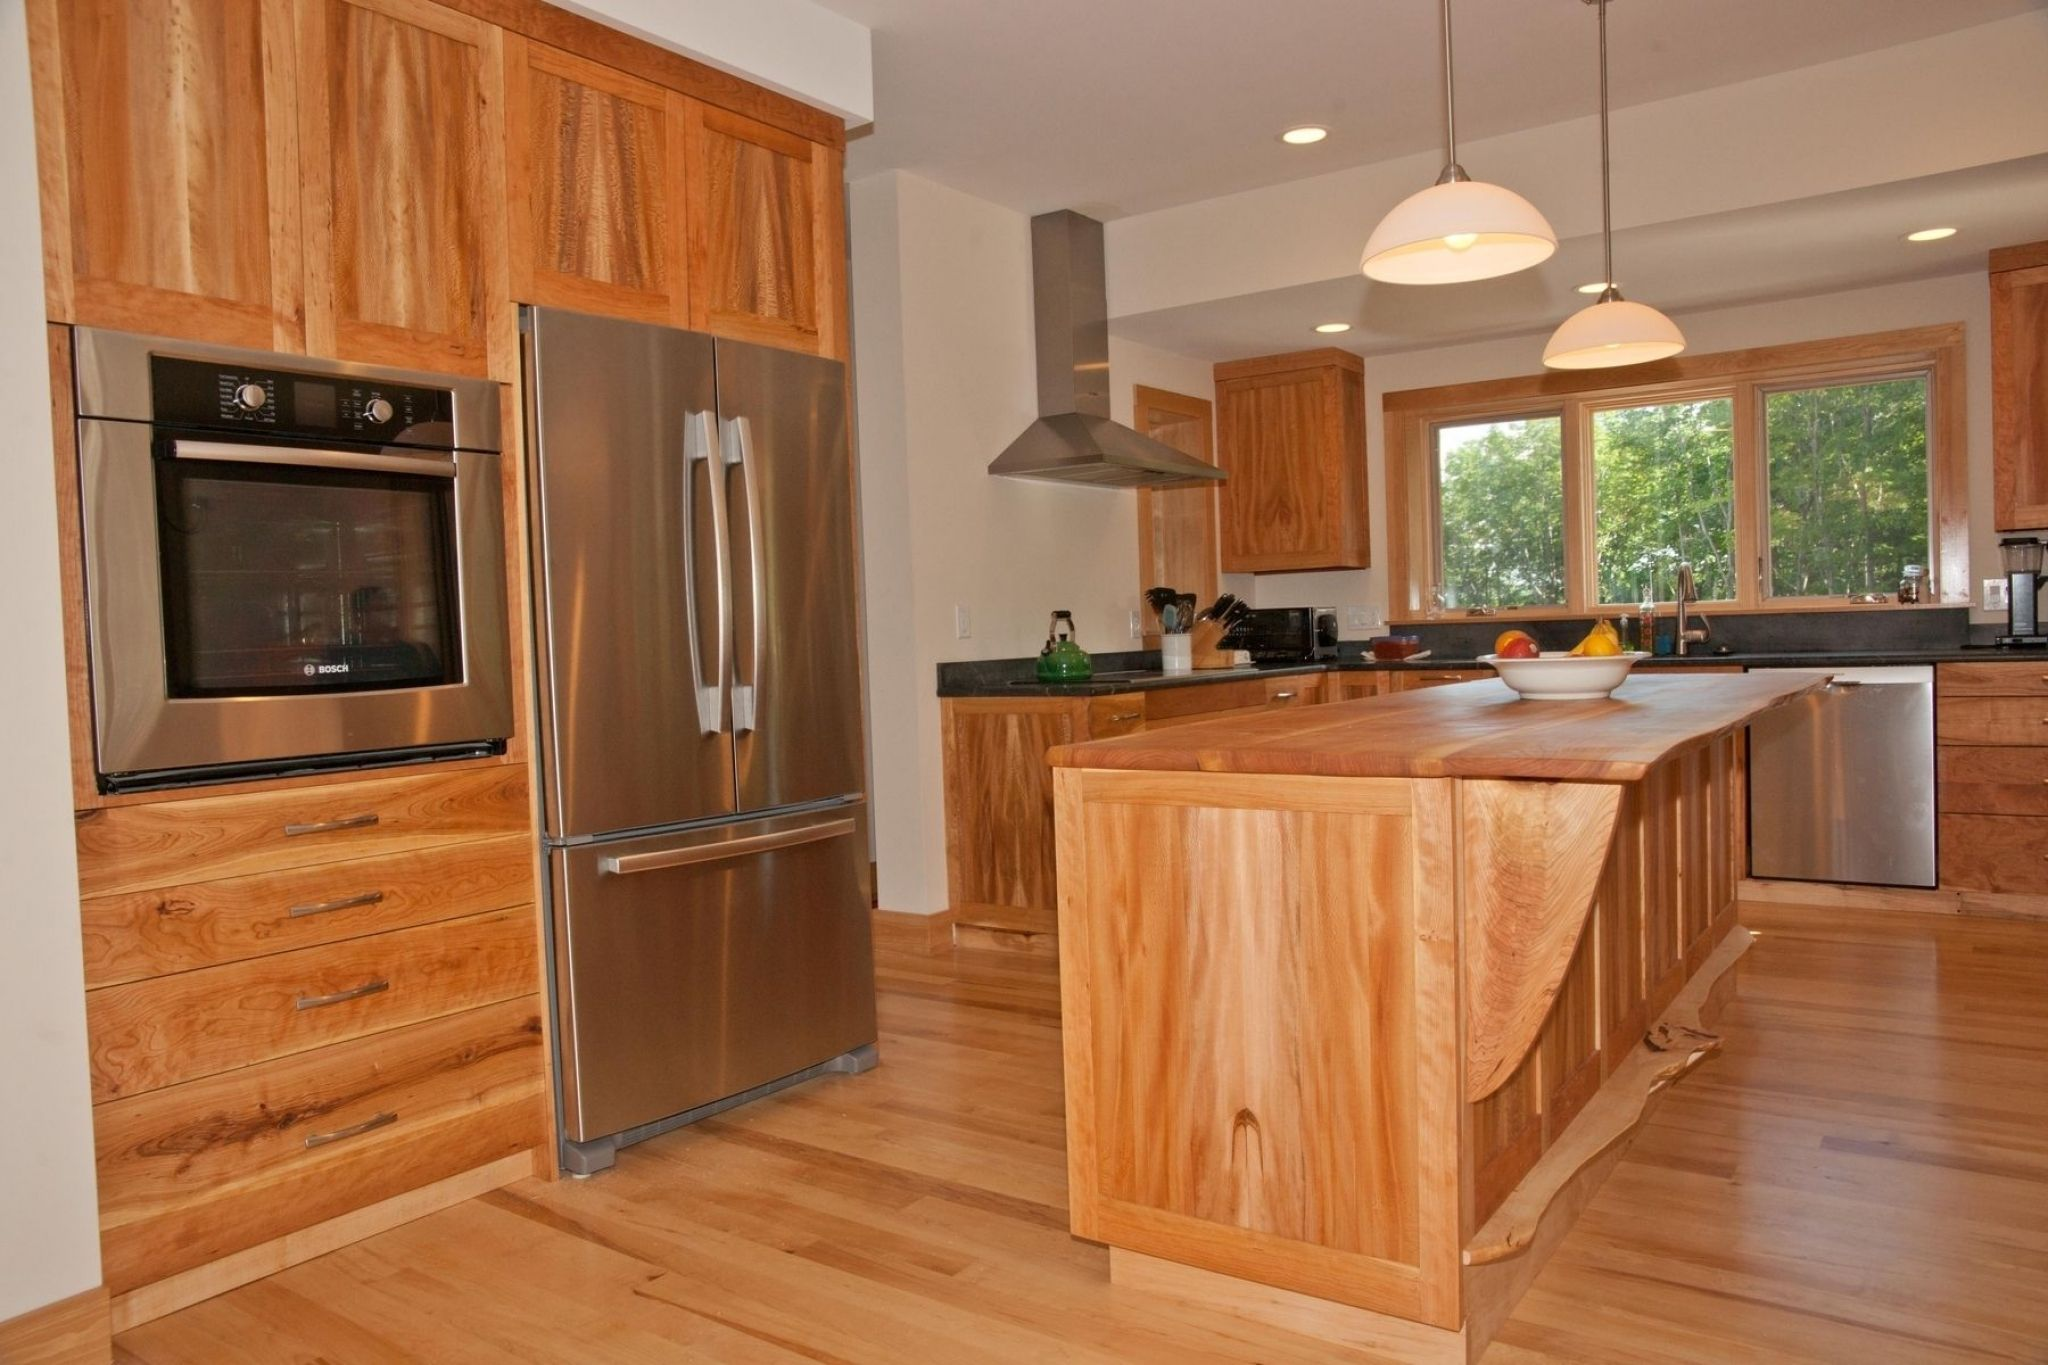 american made kitchen cabinets   kitchen cabinets update ideas on a budget check more at http american made kitchen cabinets   kitchen cabinets update ideas on      rh   pinterest com